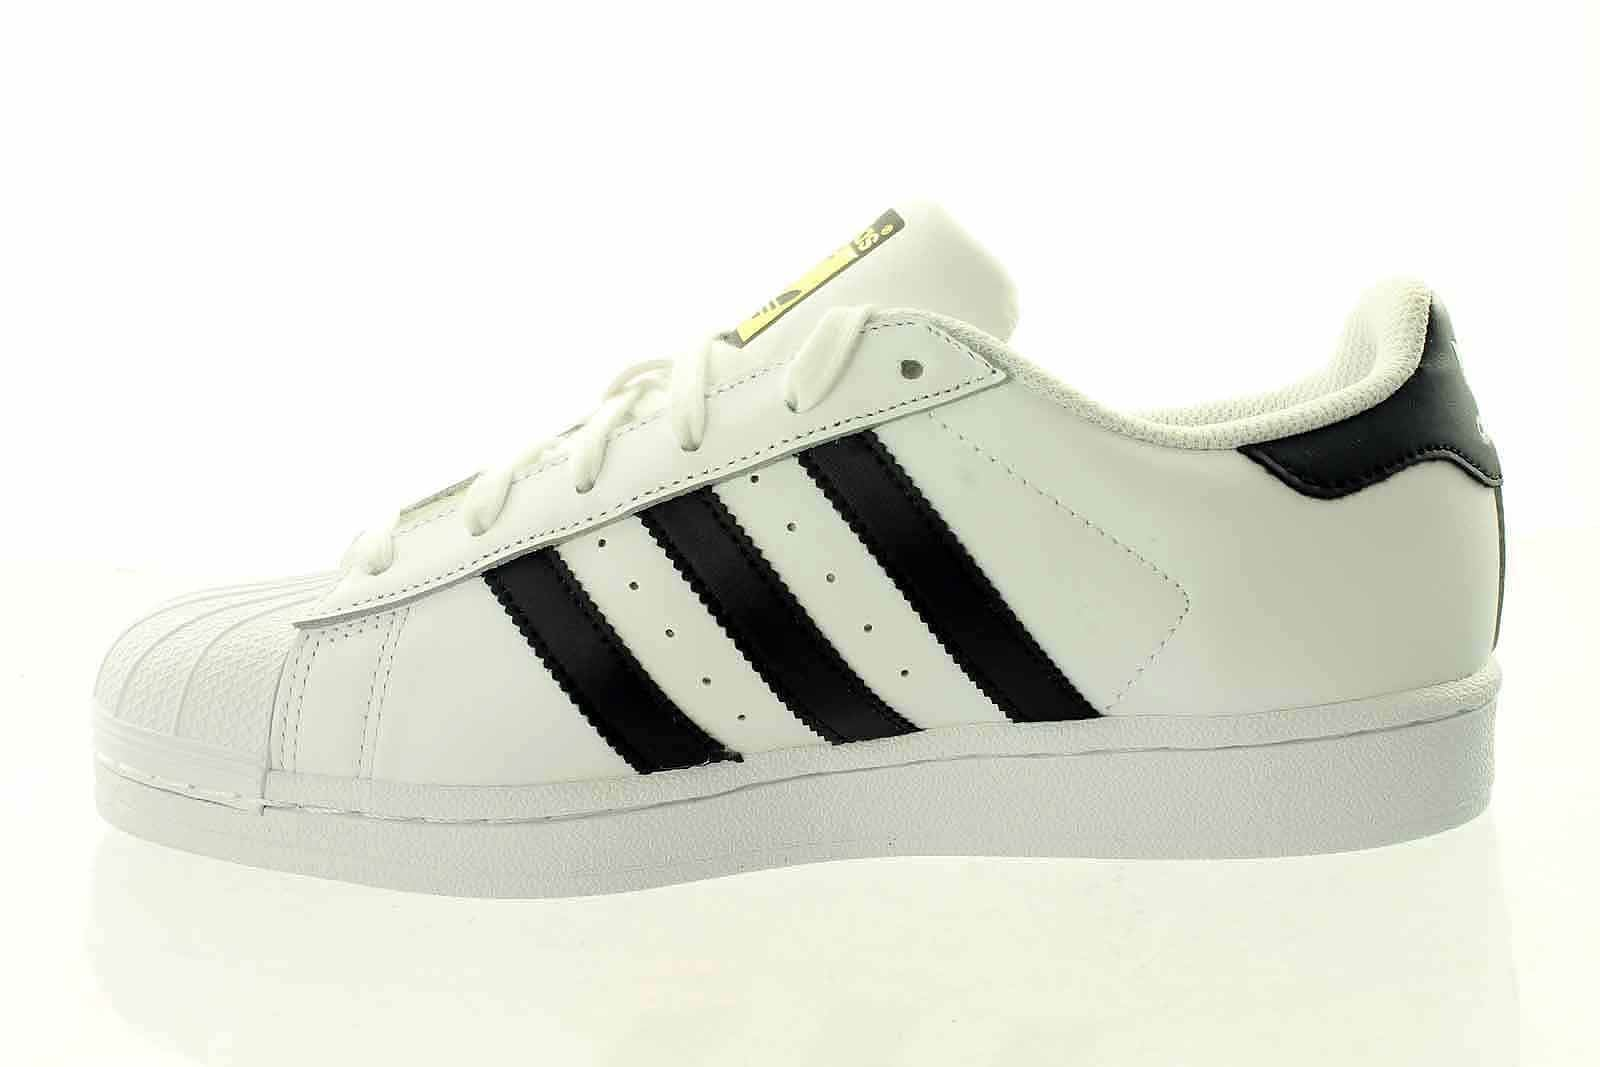 Adidas Mens RESPONSE APPROACH S white Tennis shoes 4517